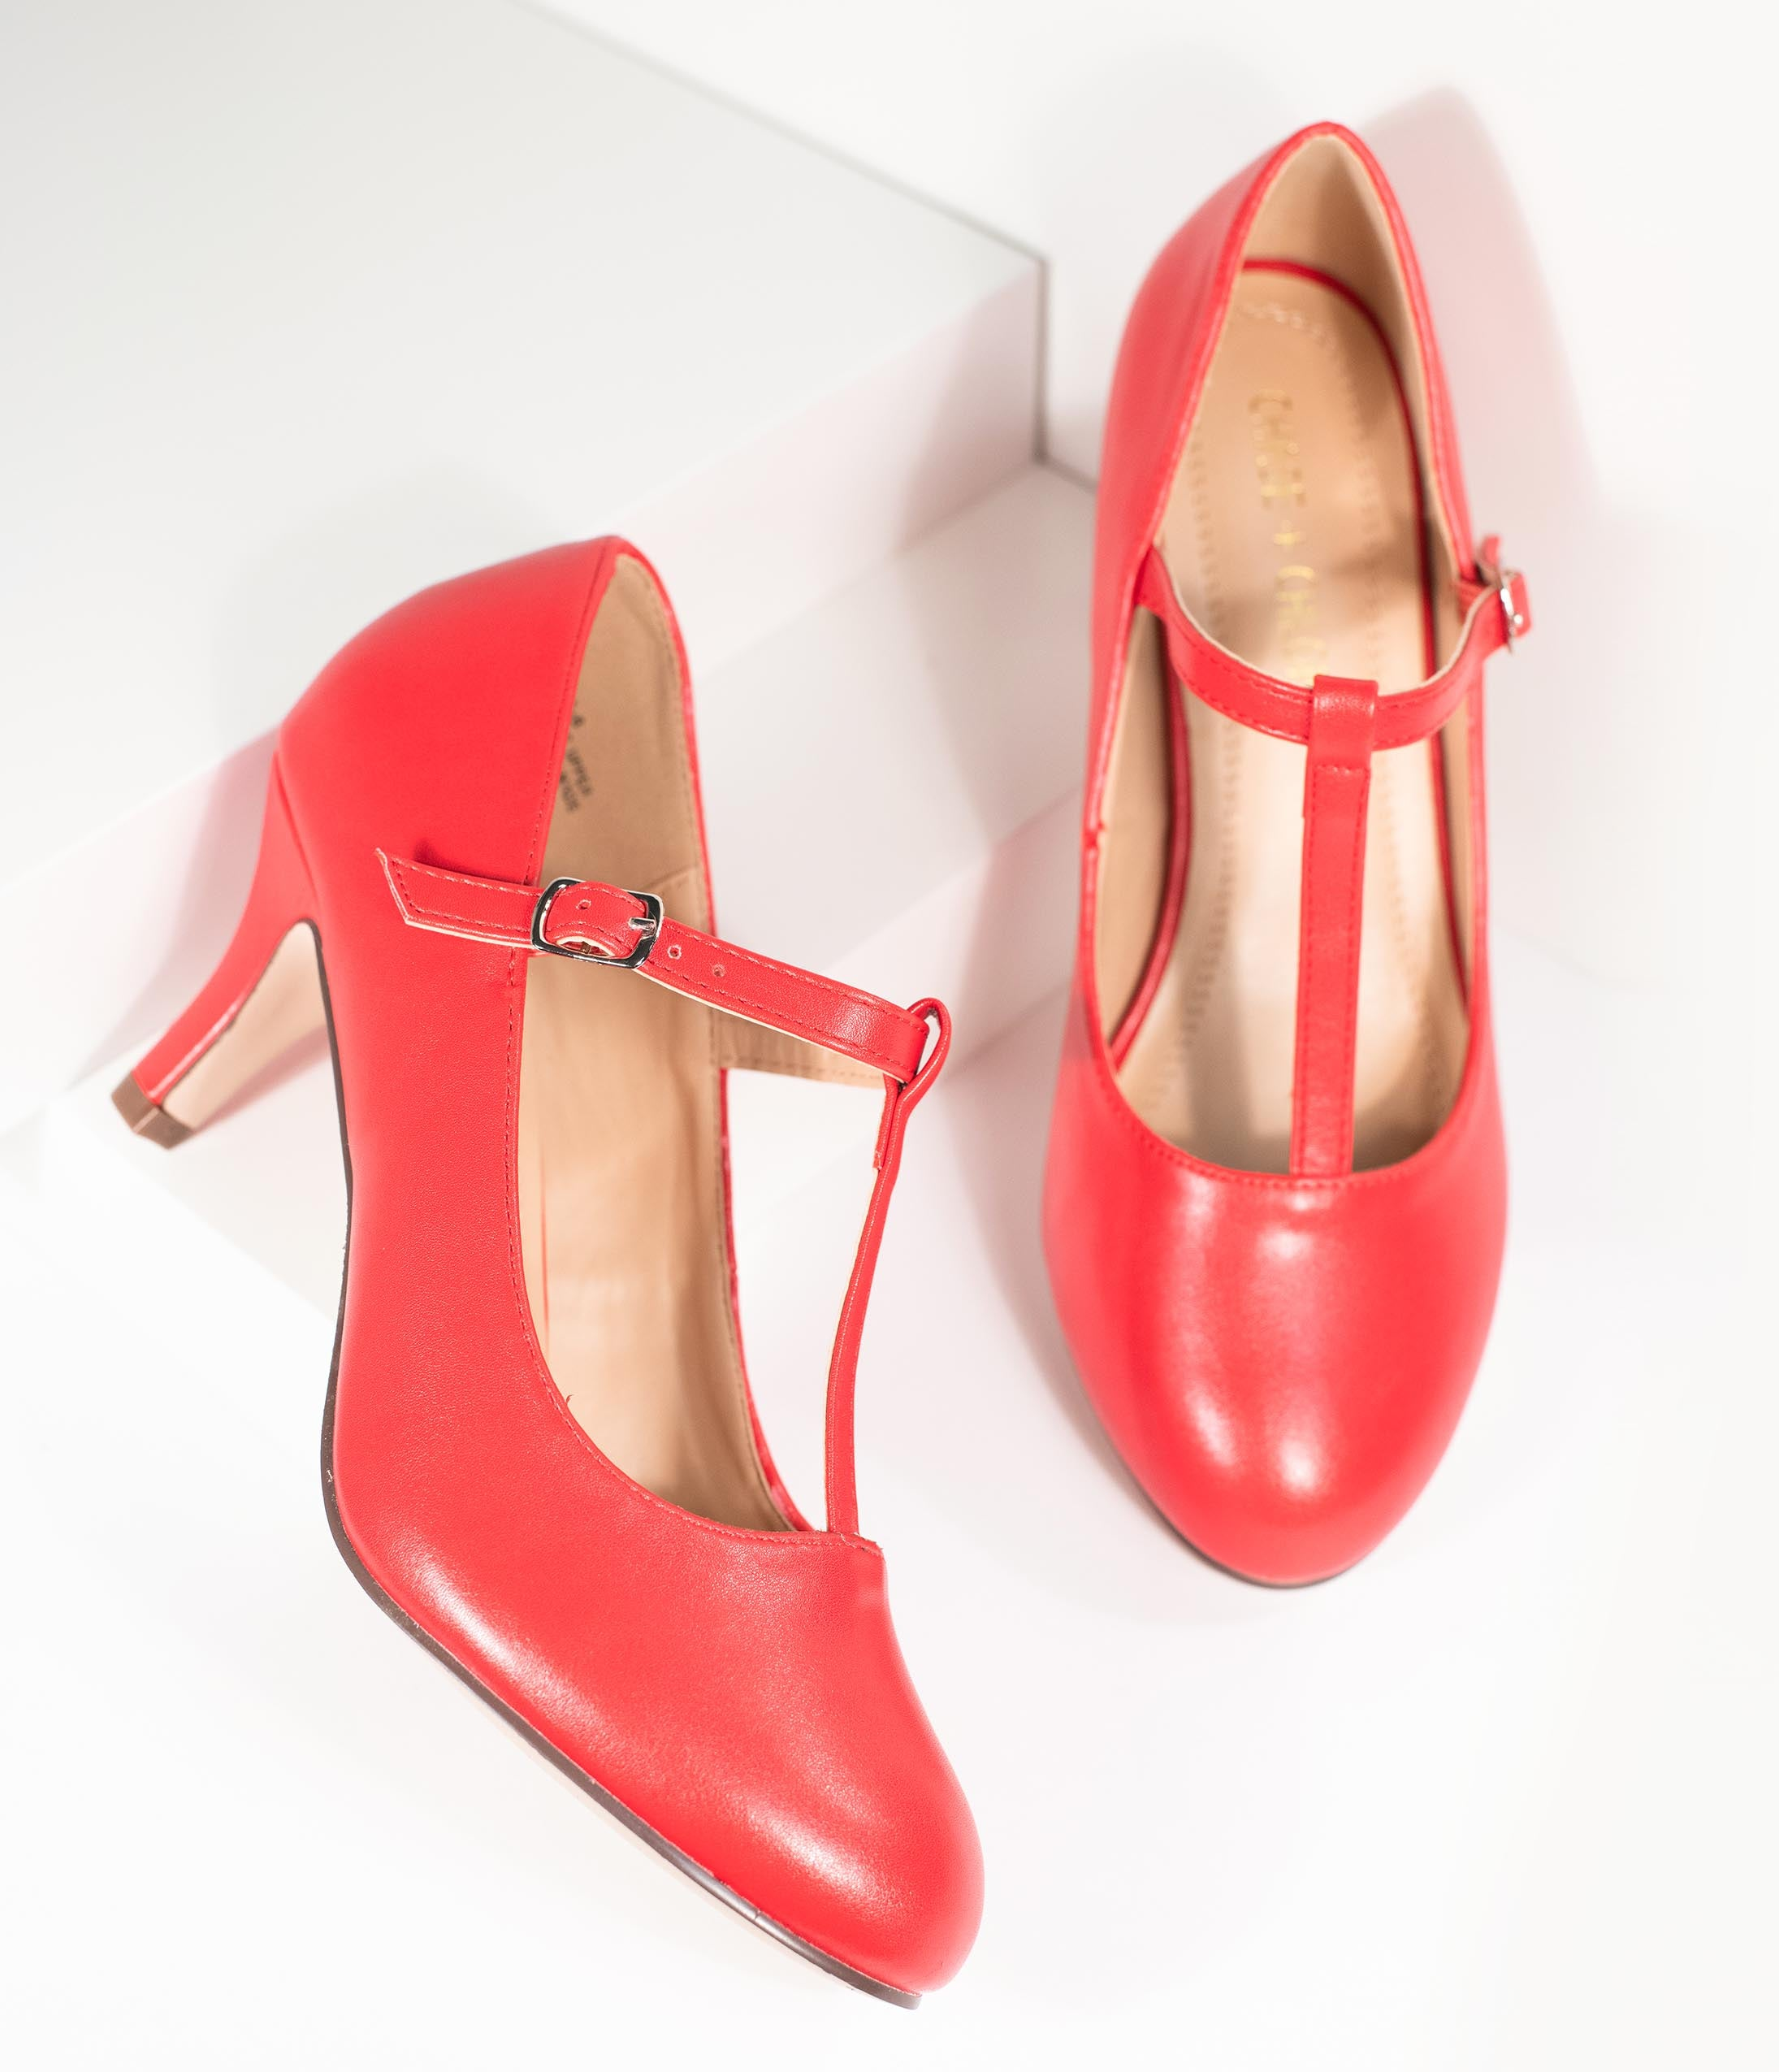 9c8eaadcb76d 1950s Shoe Styles- History and Shopping Guide